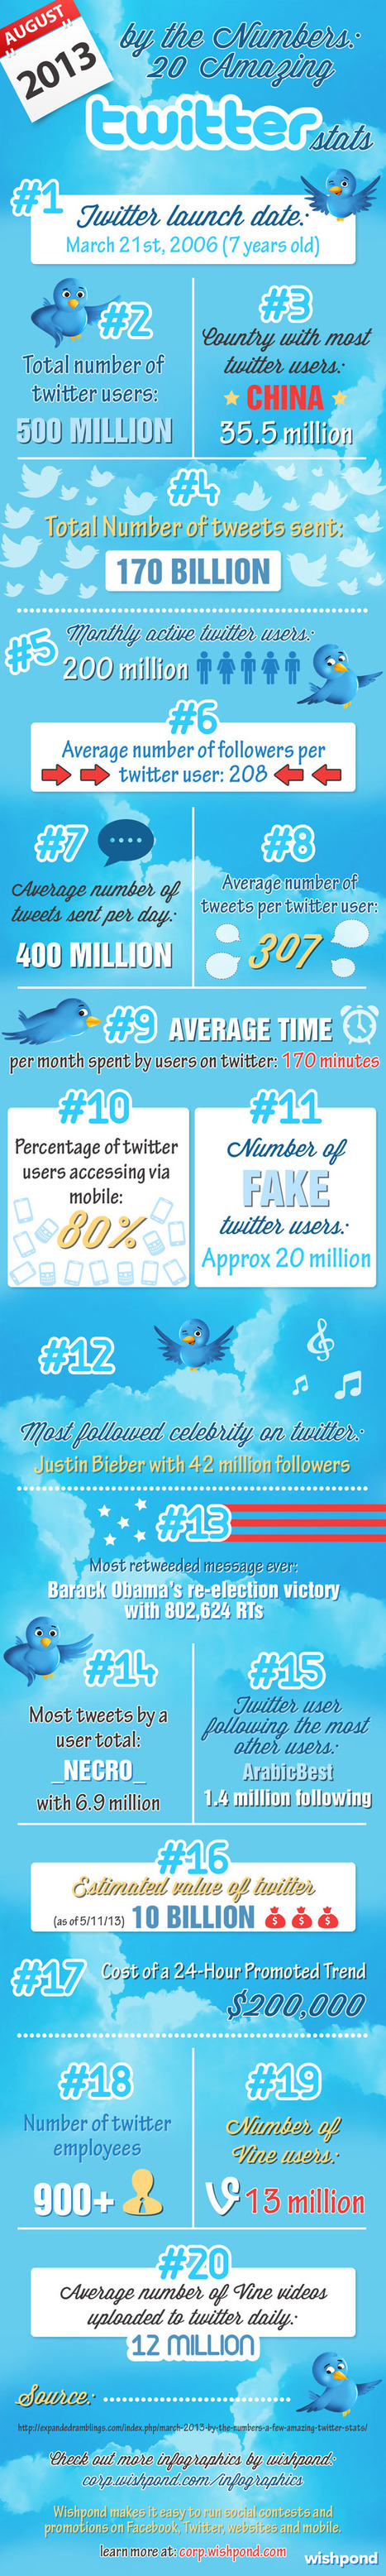 Twitter by the Numbers: 20 Amazing Social Stats [INFOGRAPHIC] | ~Sharing is Caring~ | Scoop.it